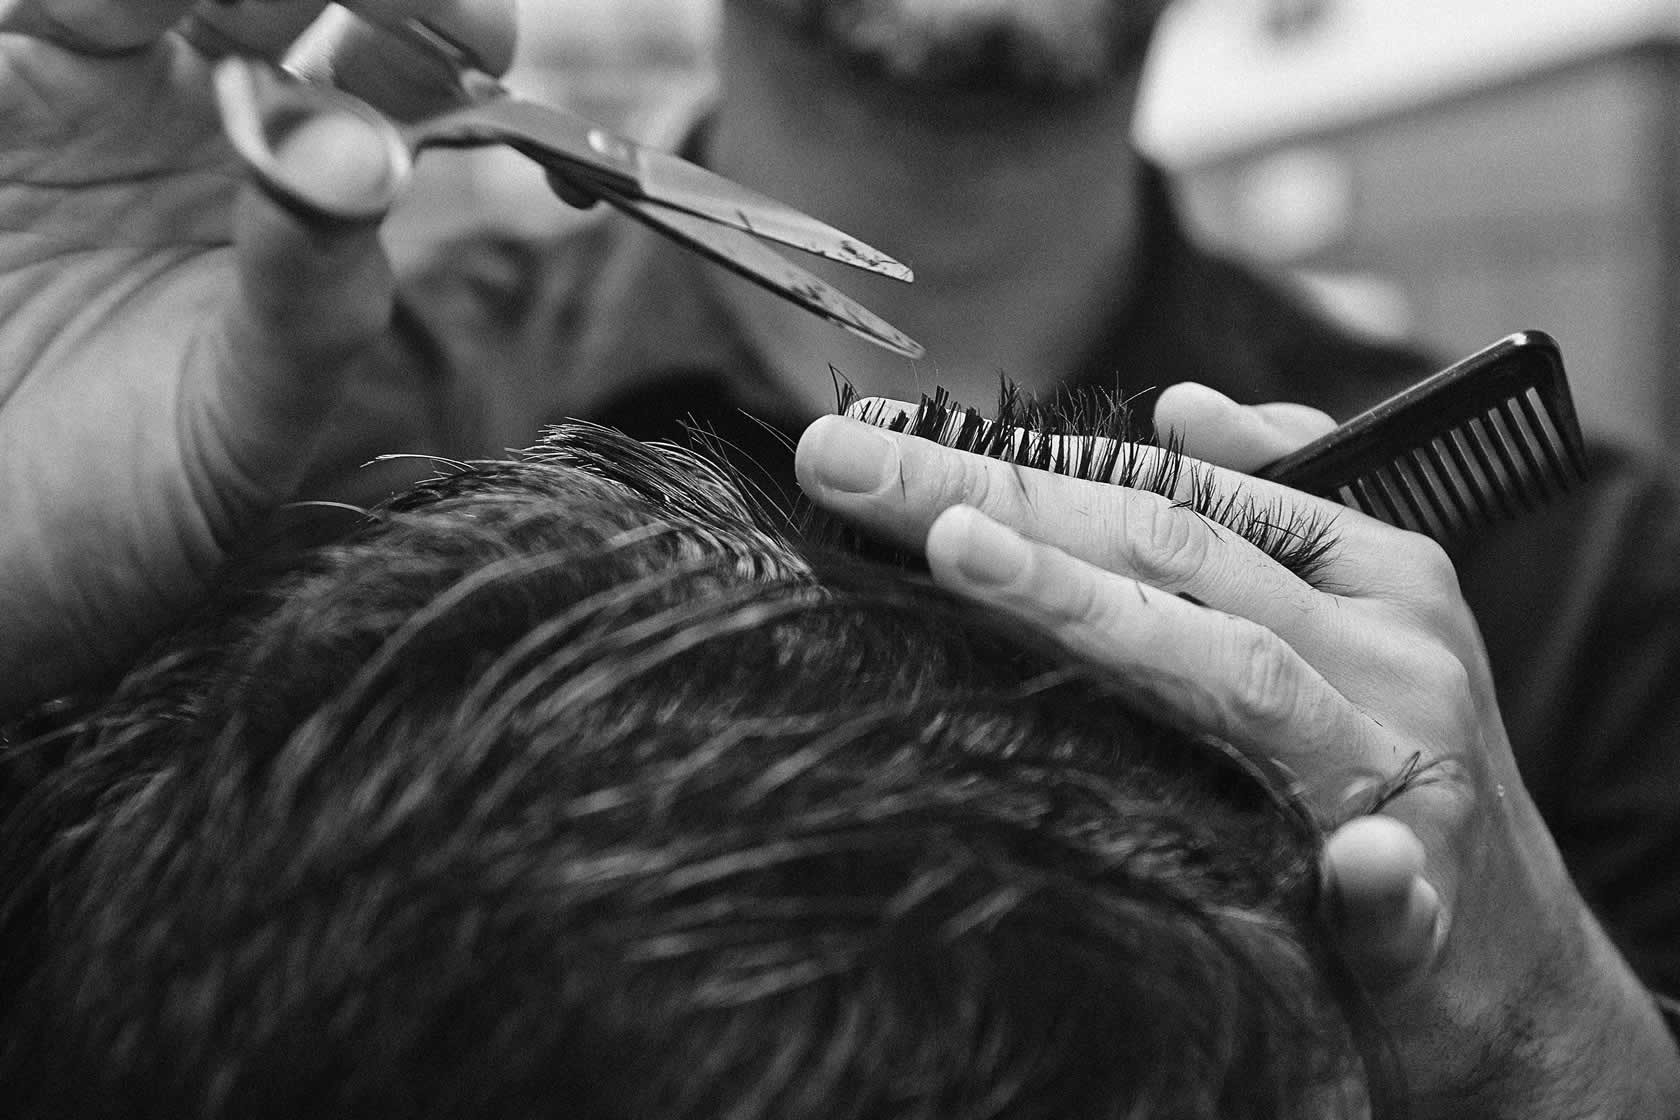 Top 4 Haircuts For Men Suitable For Spring Men Hairstyles Barber Shop Hair Cut Lysa Africa